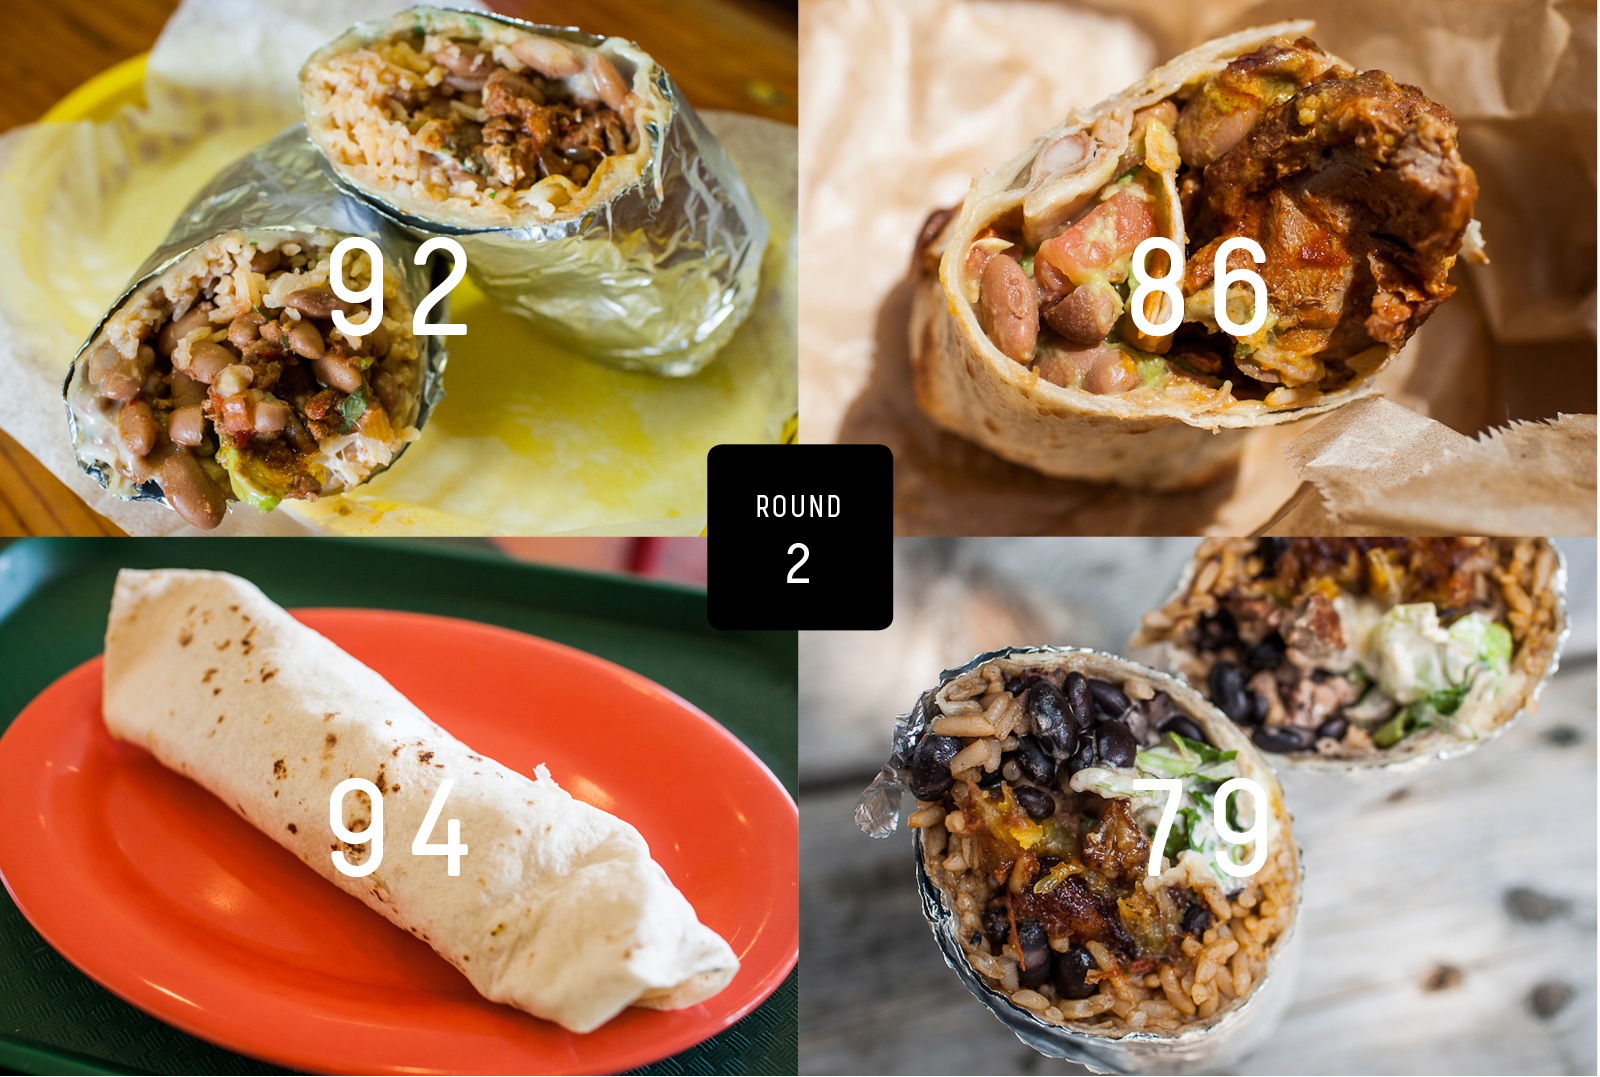 Clockwise from top left: Taqueria Cancun, Little Donkey, El Pélon Taqueria, Delicious Mexican Eatery.